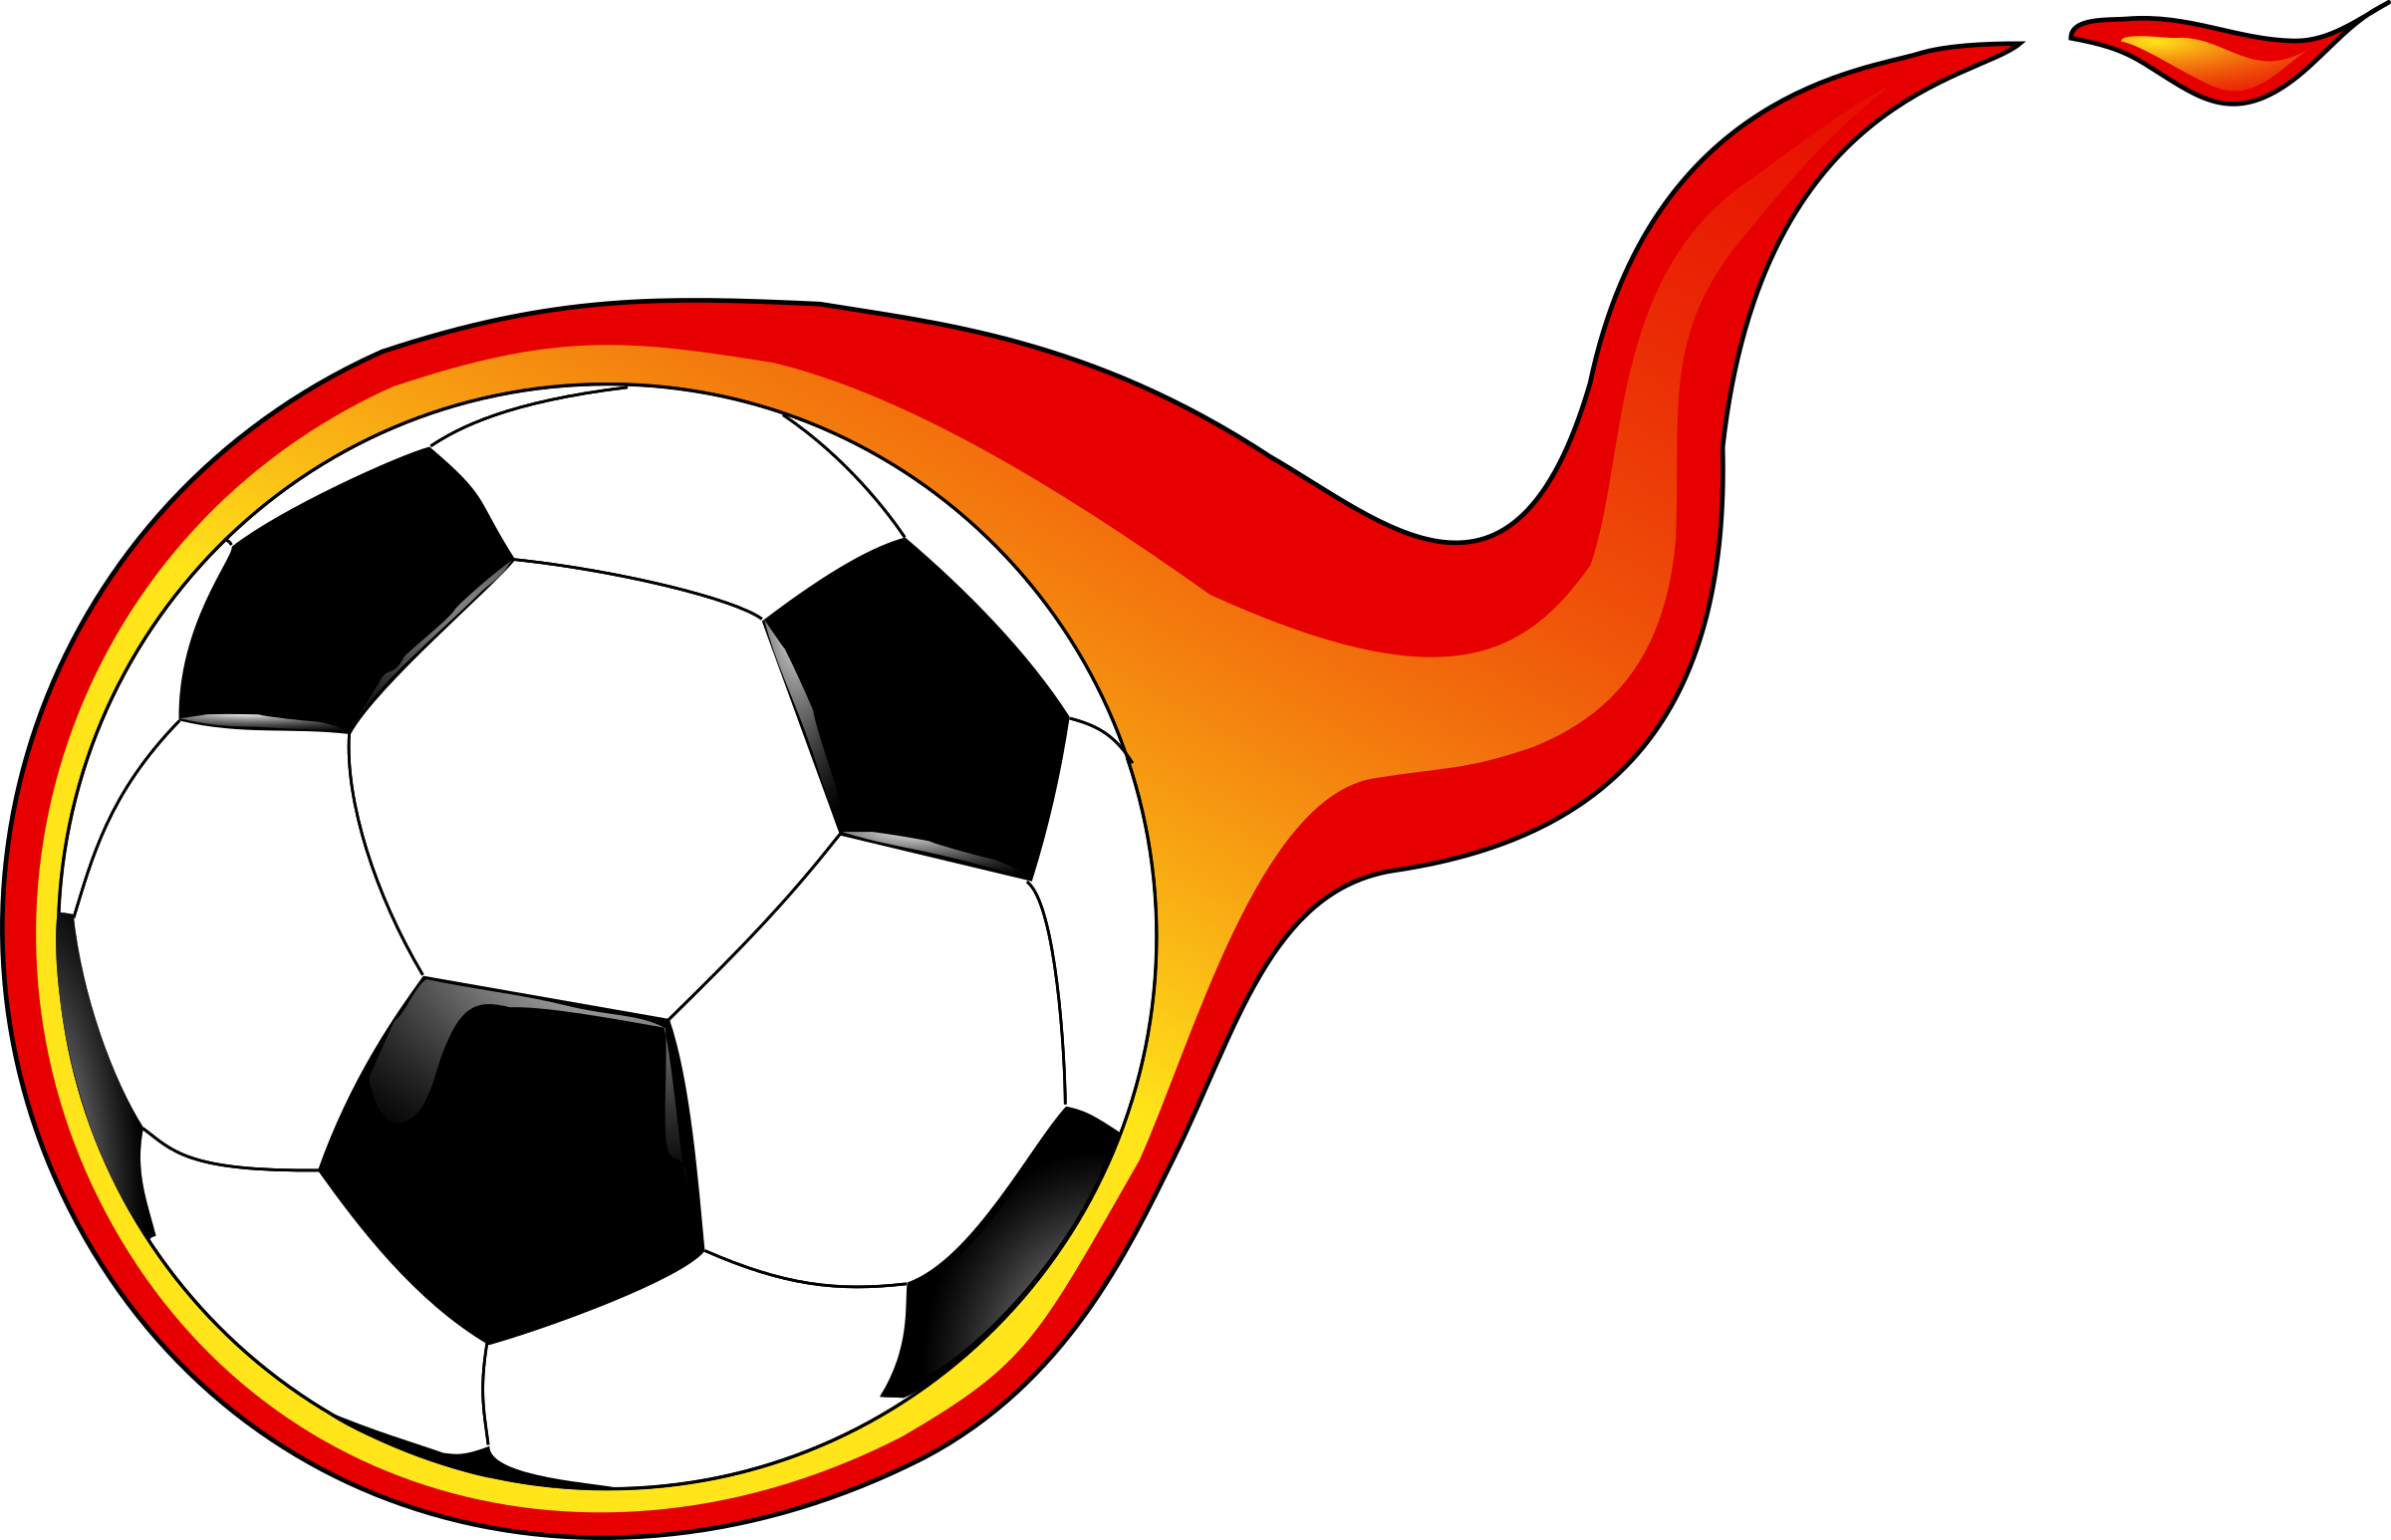 Manager clipart football manager. Flaming soccer ball icons